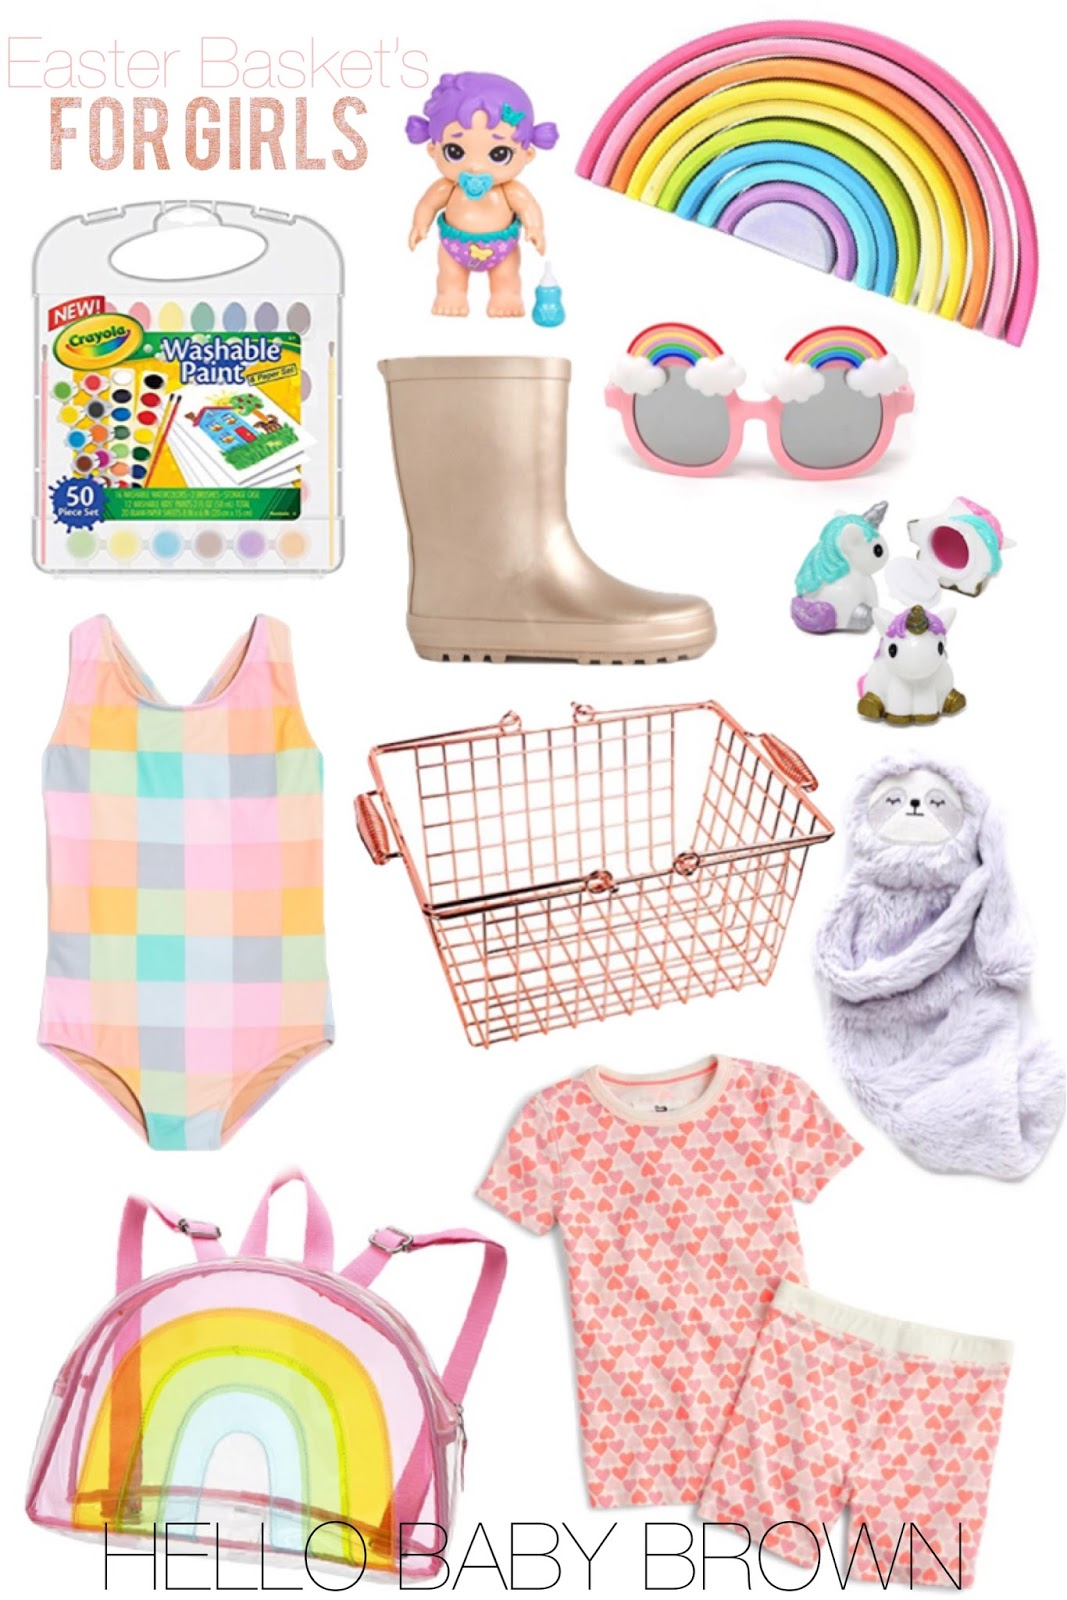 Hello baby brown easter basket ideas for girls baby phayre is going to go nuts over this baby wooden rainbow stacker the rose gold rain boots i posted above have gotten some negle Choice Image